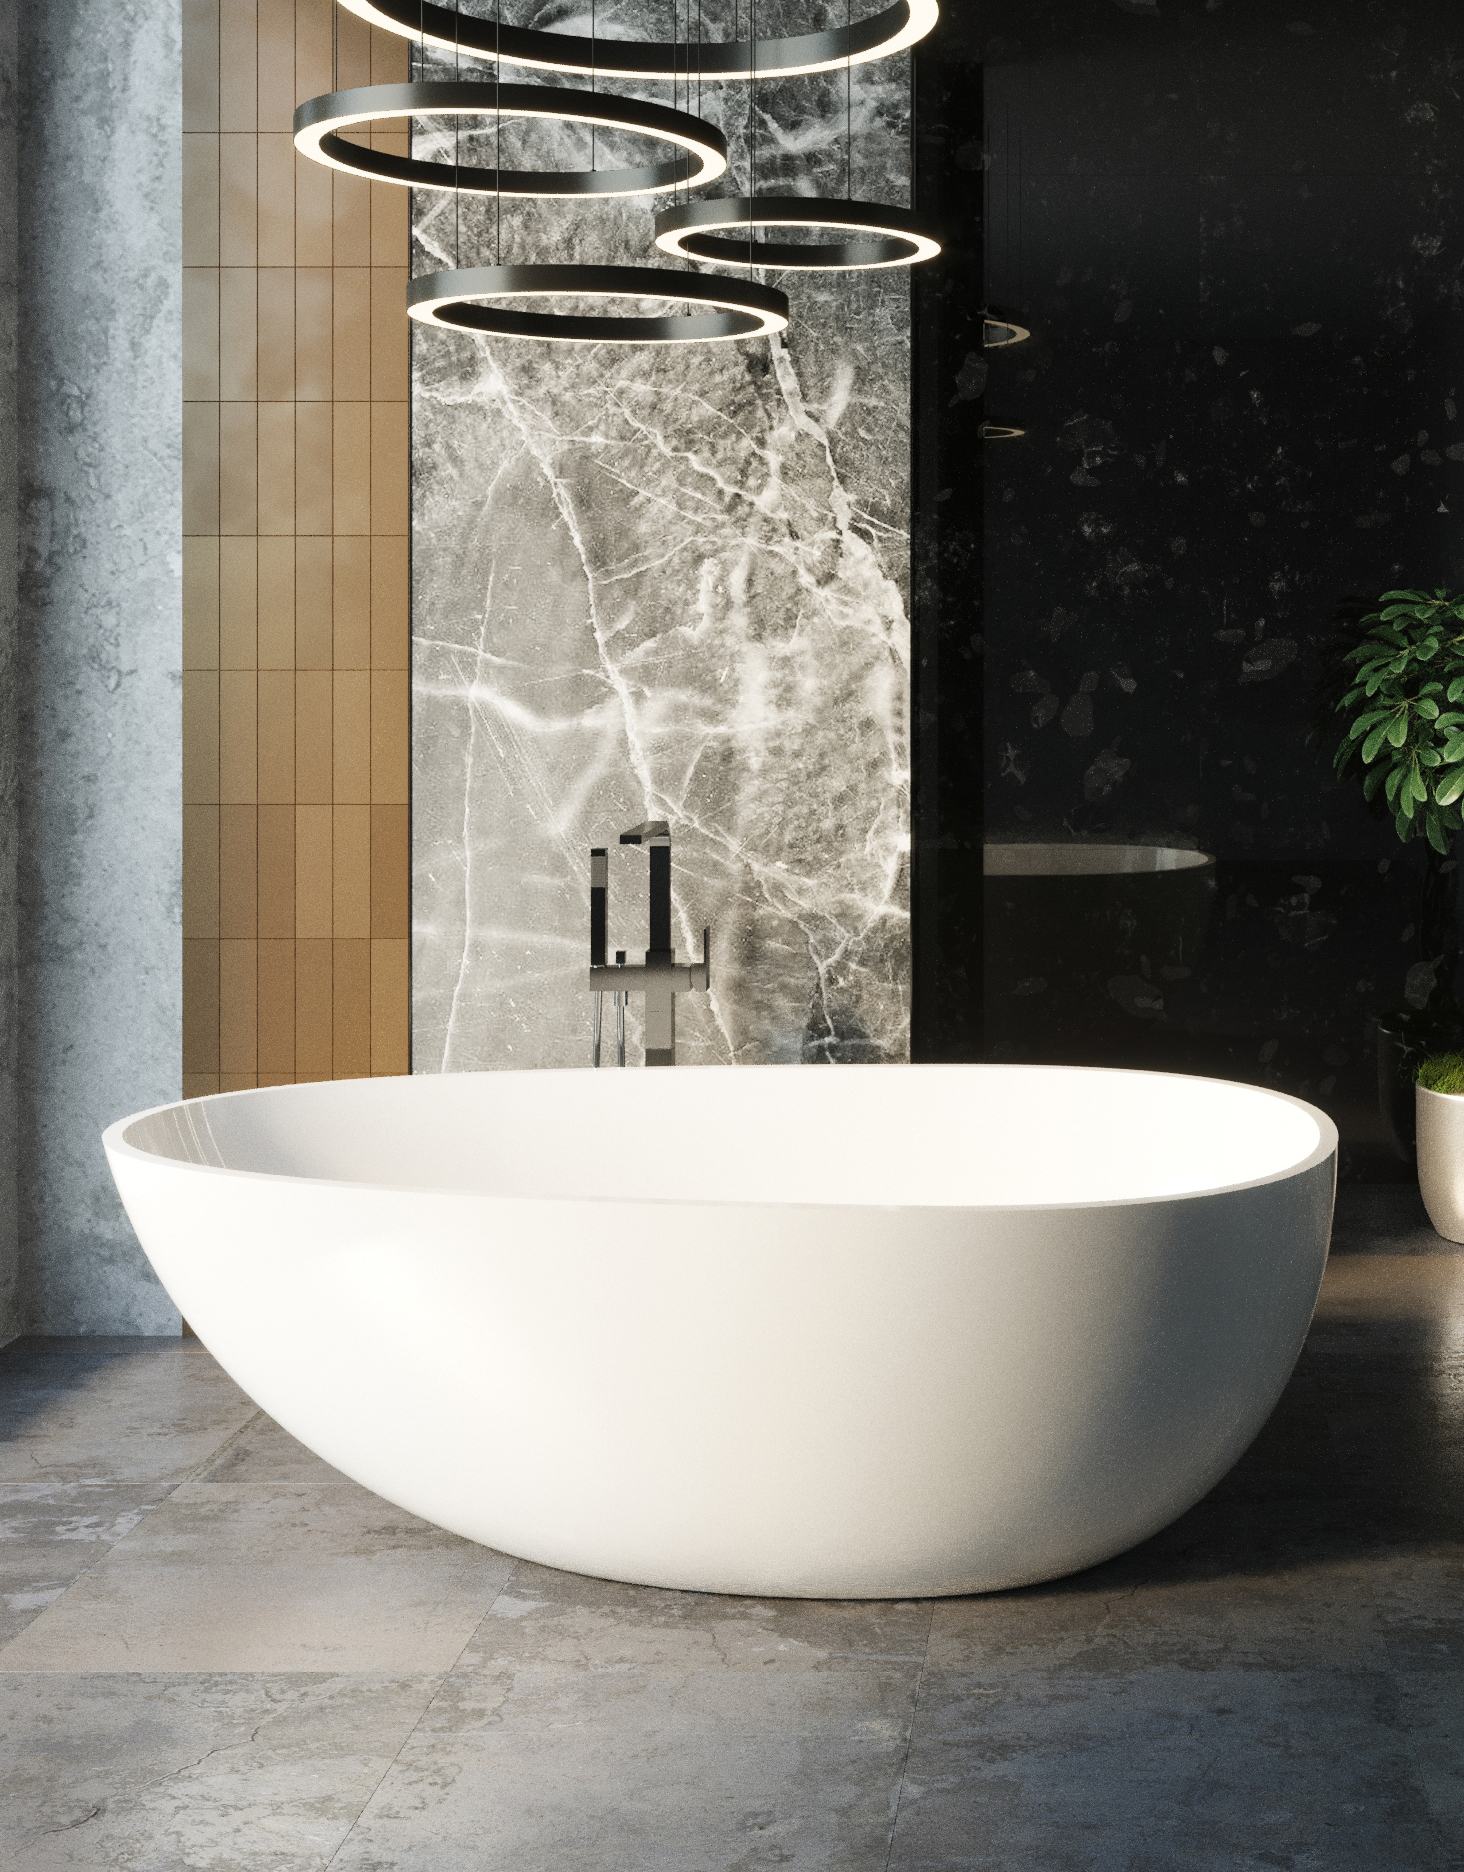 Large Freestanding Bathtub - Model BW-01-XL | Badeloft USA